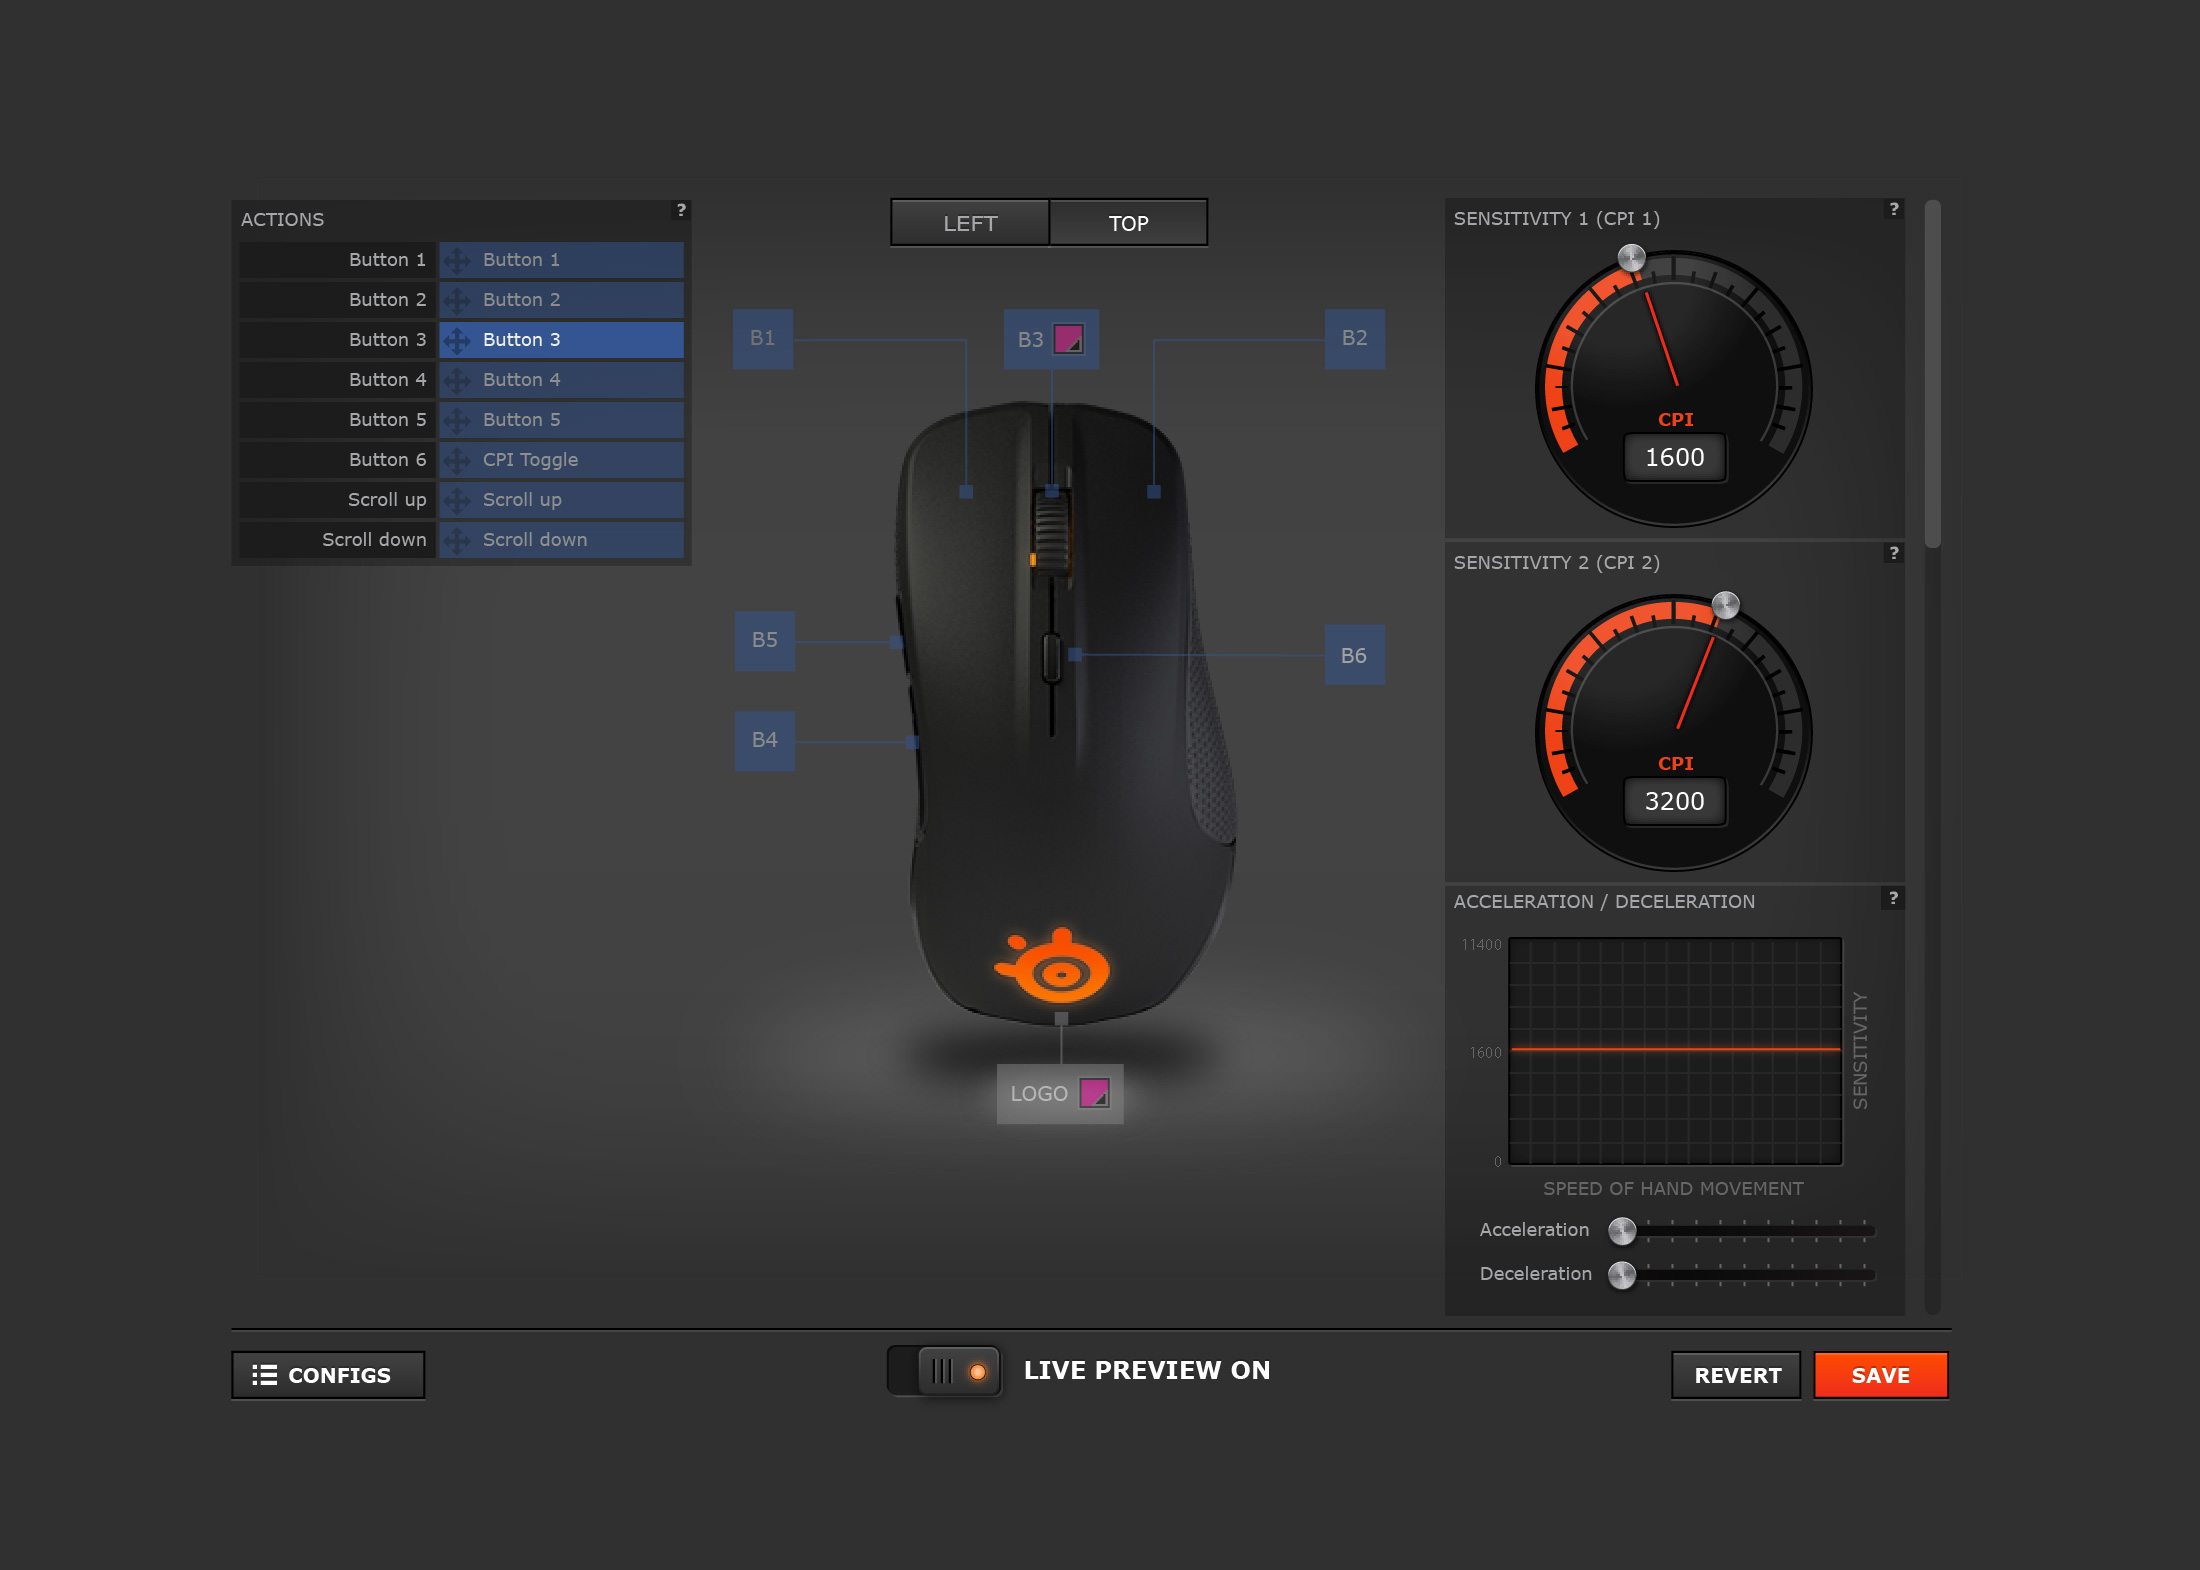 Full-view of the Rival Mouse UI